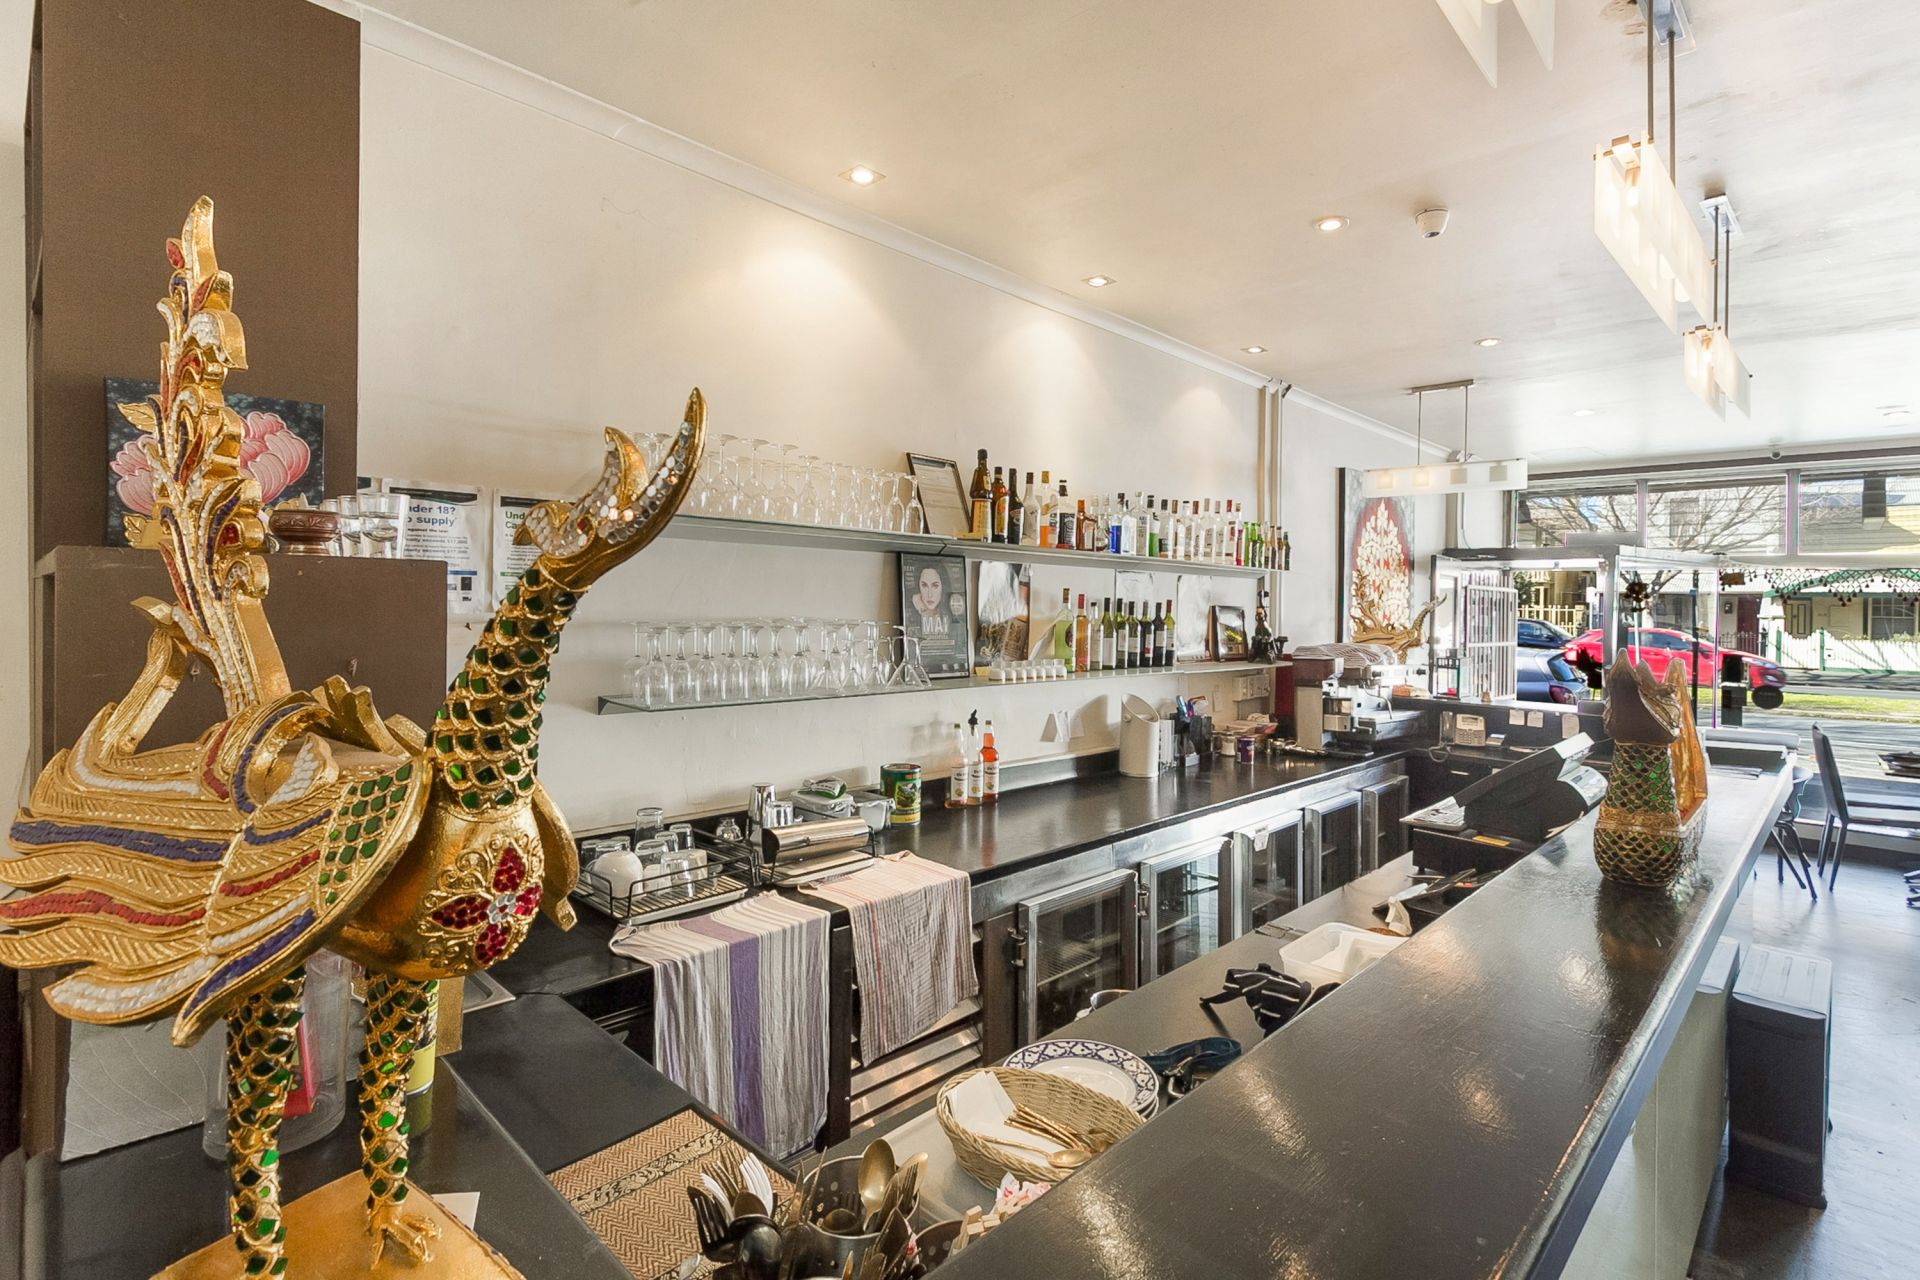 Hot Restaurant for sale on Busy Bay Street